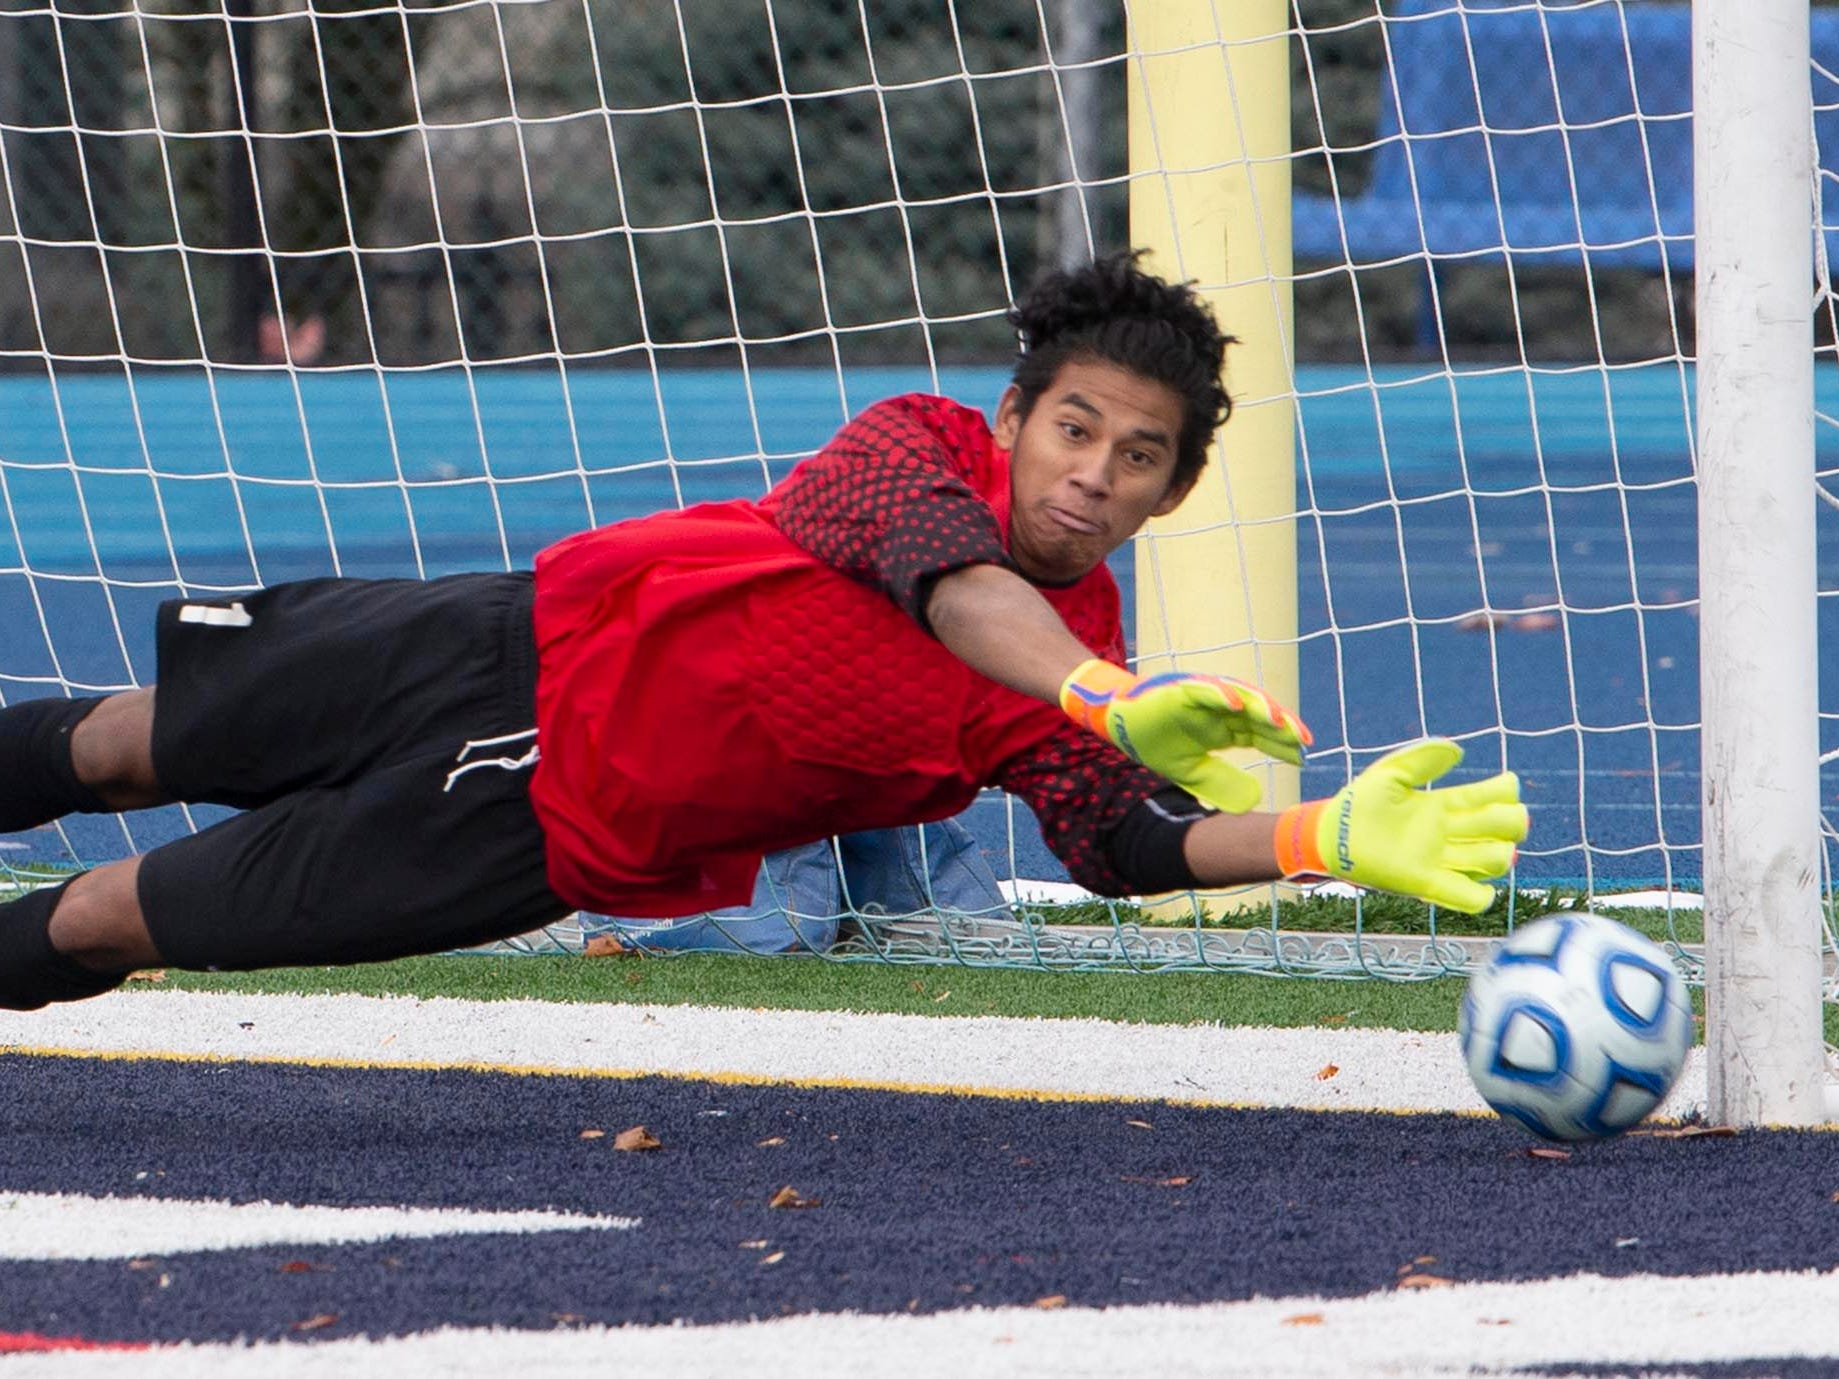 New Providence's Miguel Garcia makes one of several saves in regulation although he was bested finally during penalty kicks in OT. New Providence vs. Glassboro in Boys Group I Soccer in Union NJ.